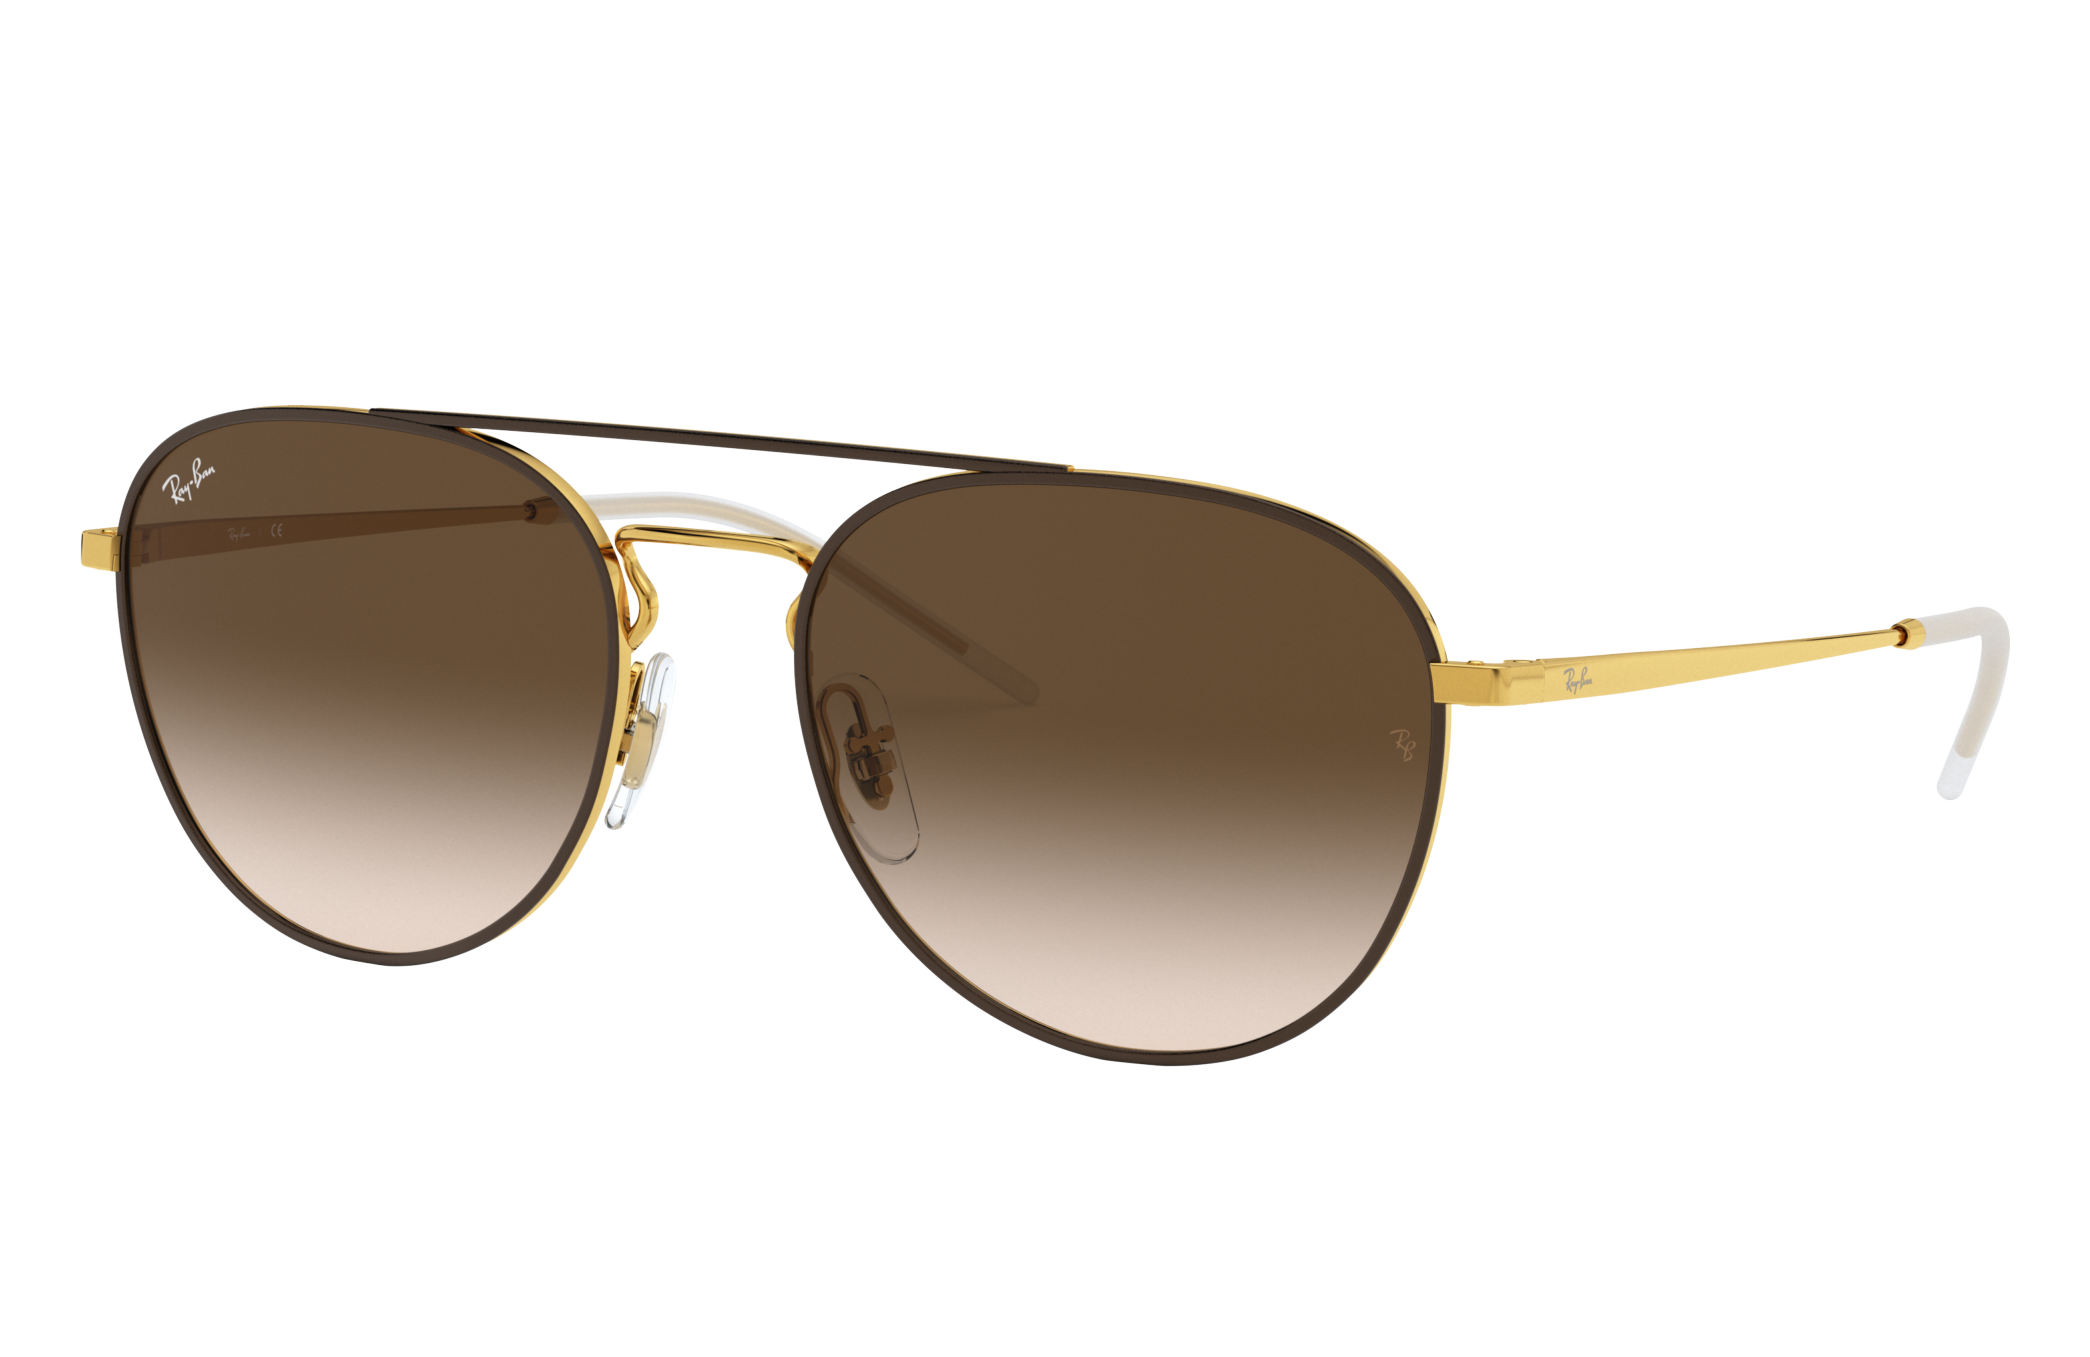 Ray-Ban Rb3589 Gold, Brown Lenses - RB3589